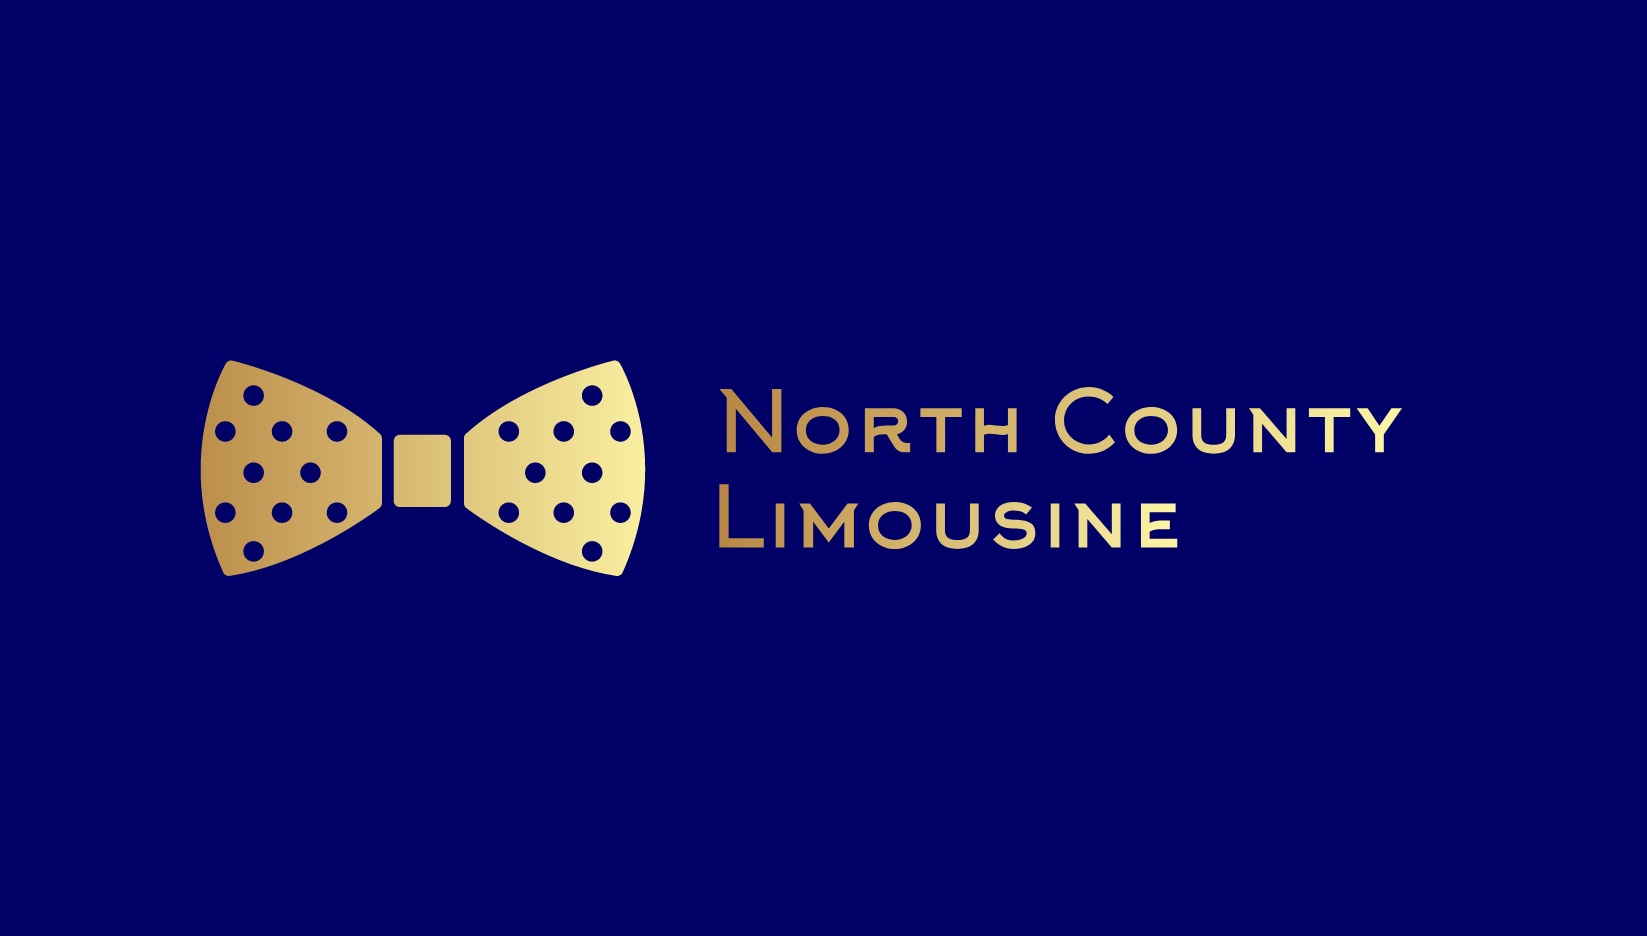 north county limousine